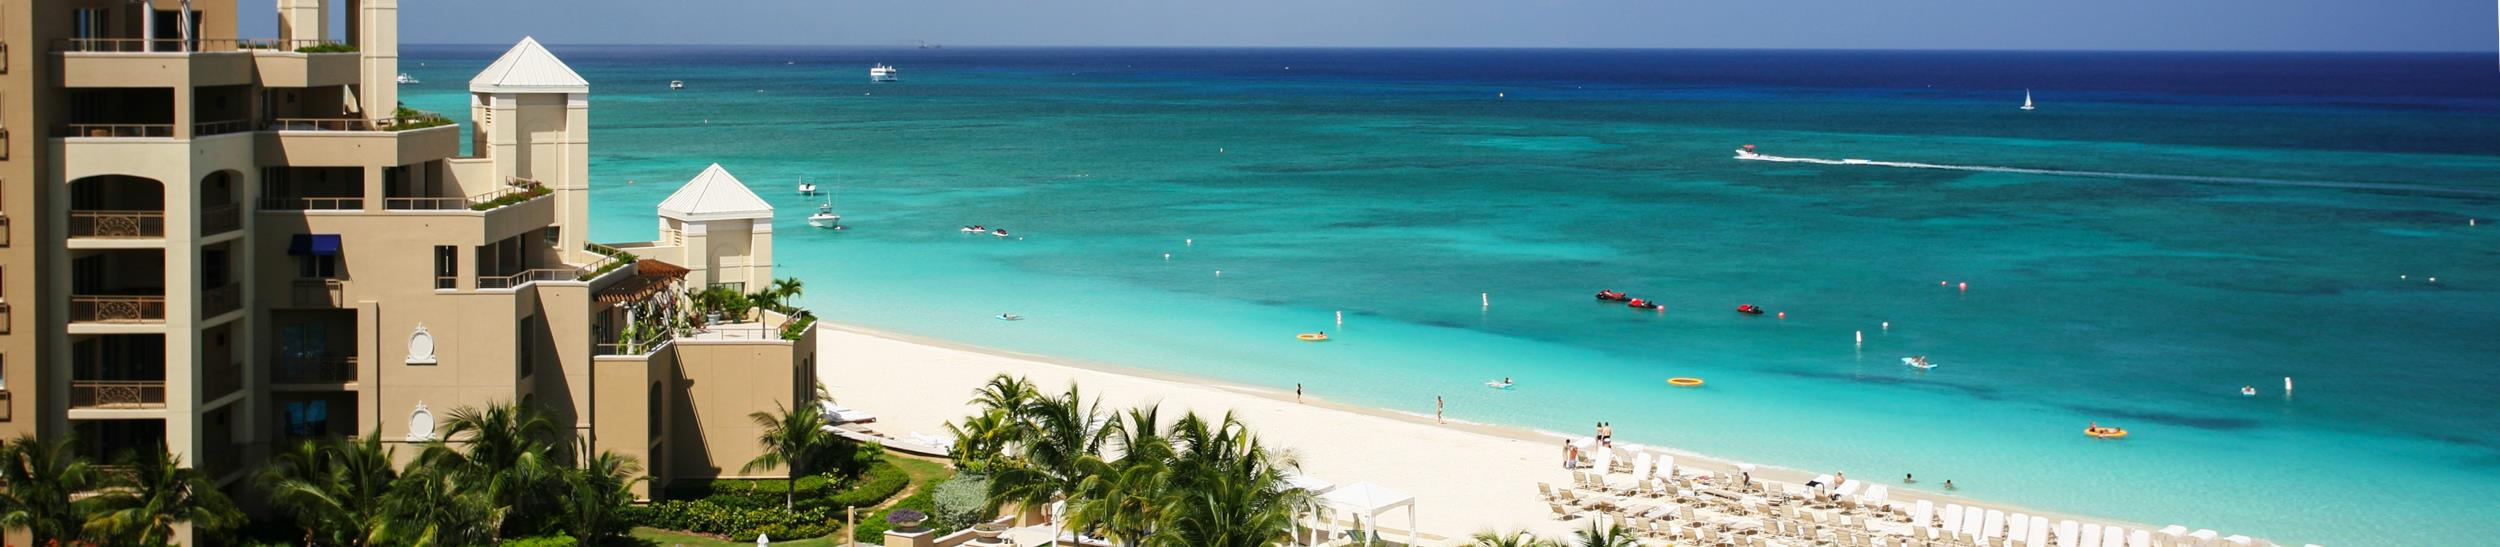 A view from the North Tower at The Ritz-Carlton Grand Cayman looking south across pool and Seven Mile Beach